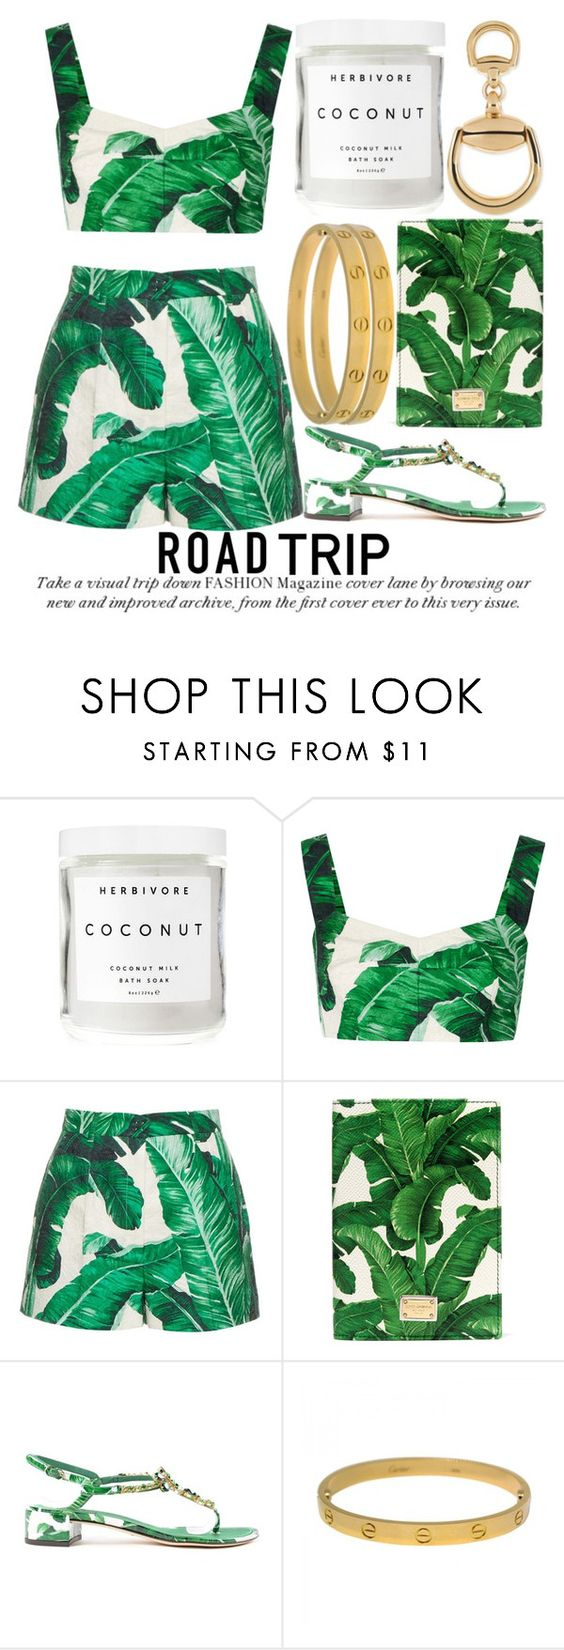 """""""ROAD TRIP #2"""" by noraaaaaaaaa ❤ liked on Polyvore featuring Herbivore, Dolce&Gabbana, Cartier, Gucci, GREEN, Dolce and roadtrip"""